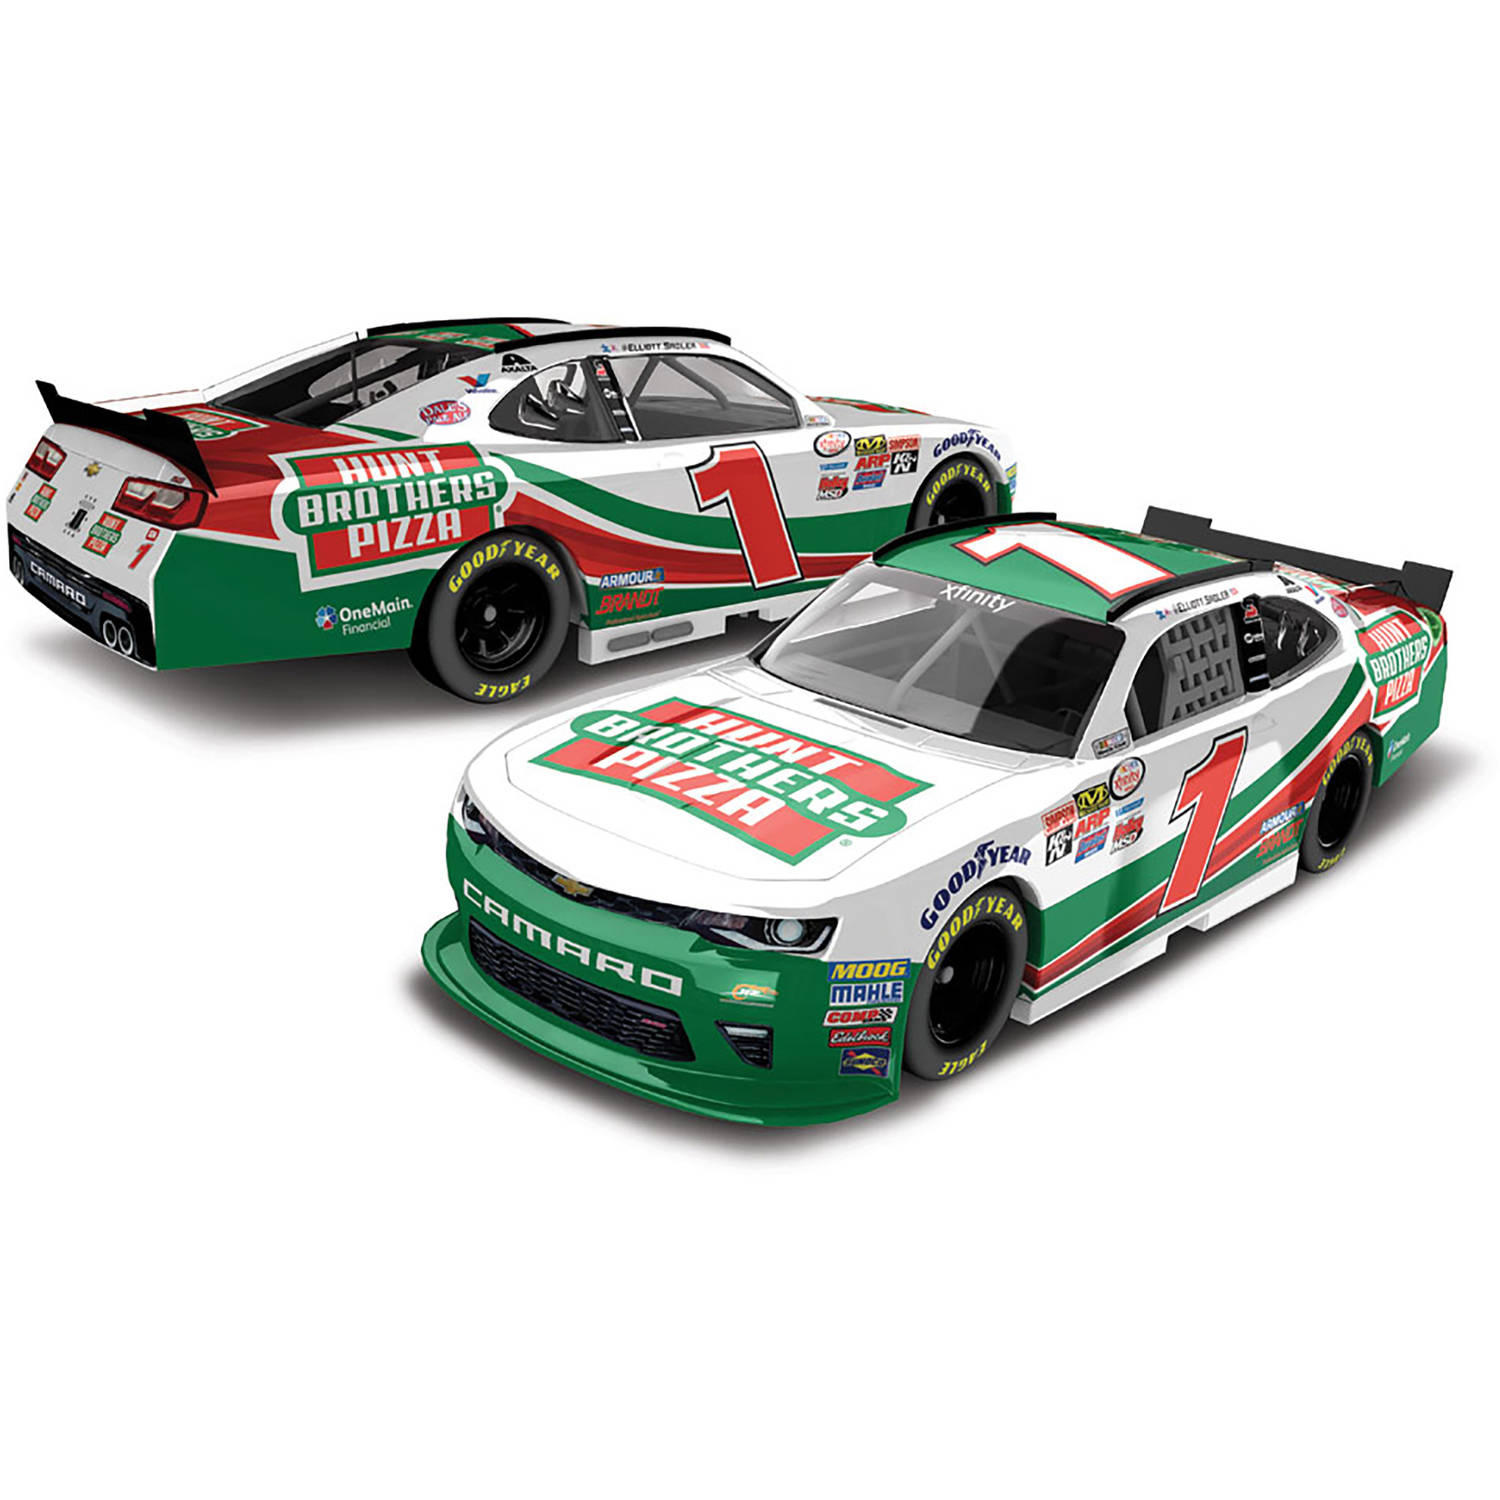 Lionel Racing Elliott Sadler #1 Hunt Brothers Pizza 2017 Chevrolet Camaro 1:64th Scale Hard-Top Official Diecast of NASCAR